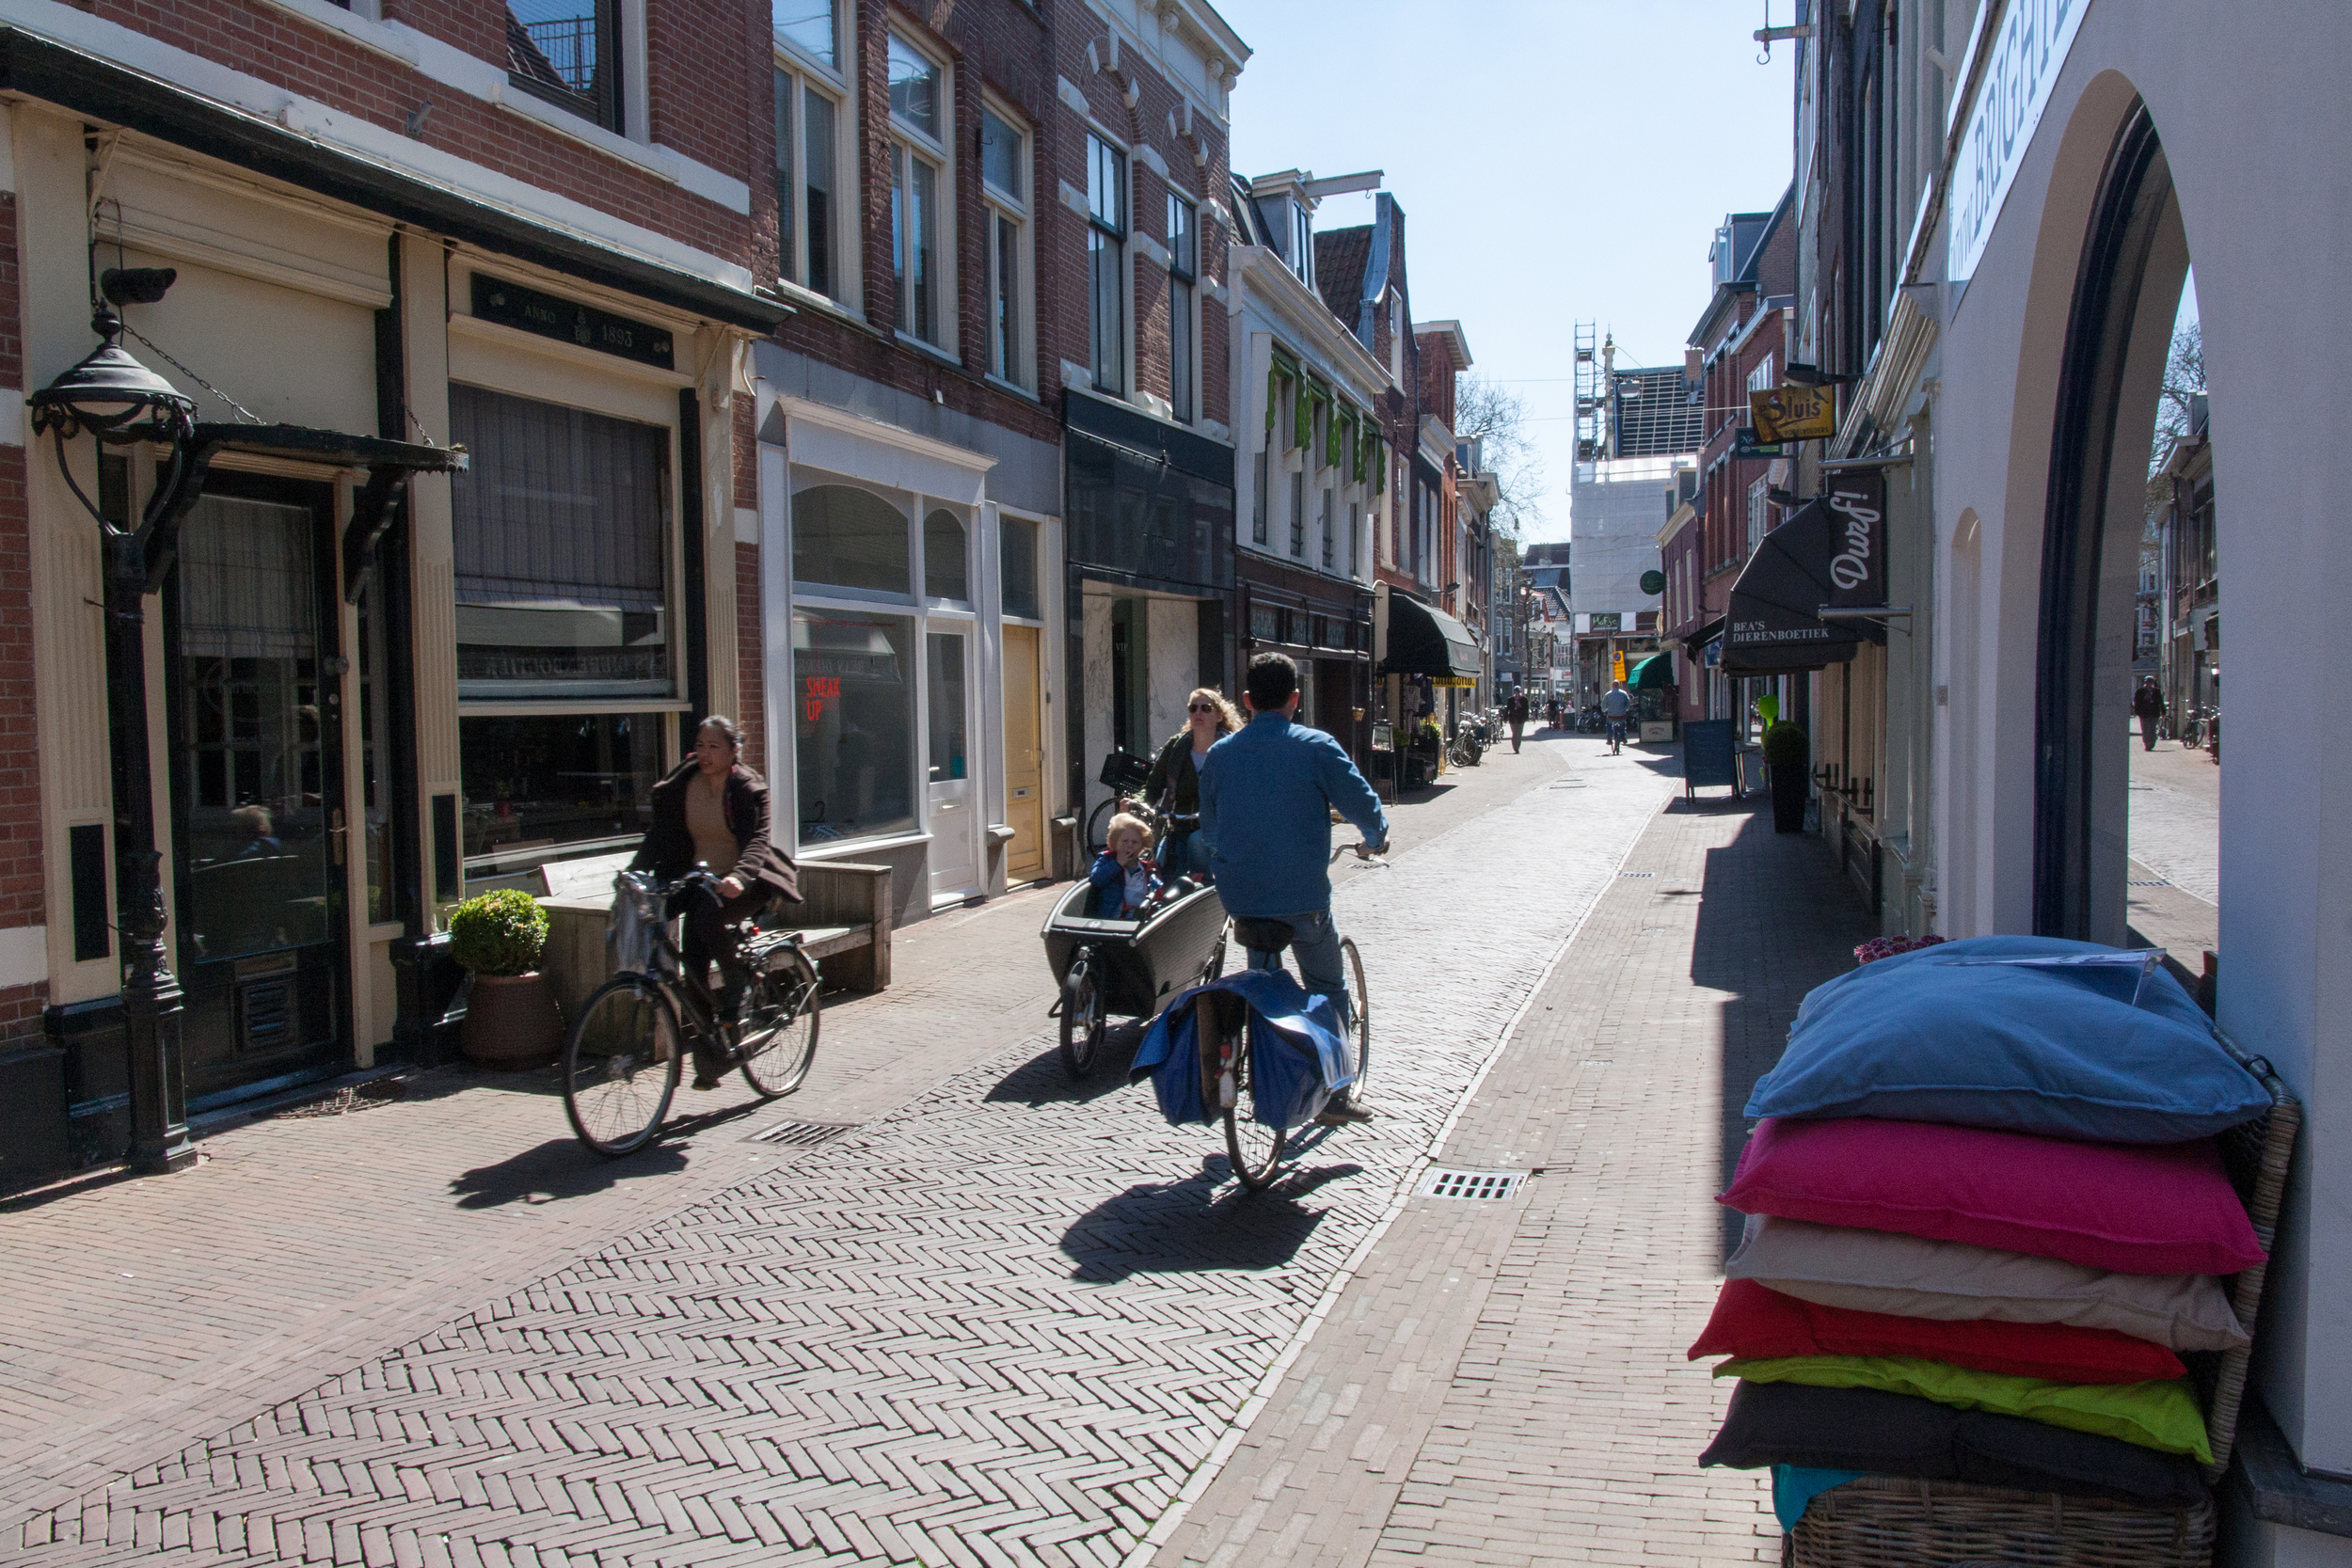 Narrow city streets like this in some places make choosing to ridea bicycle no question. Sometimes thee streets are congested with pedestrians on both sides and cyclists in the middle, making driving to these places impractical, and some days if there is a delivery truck, impossible!